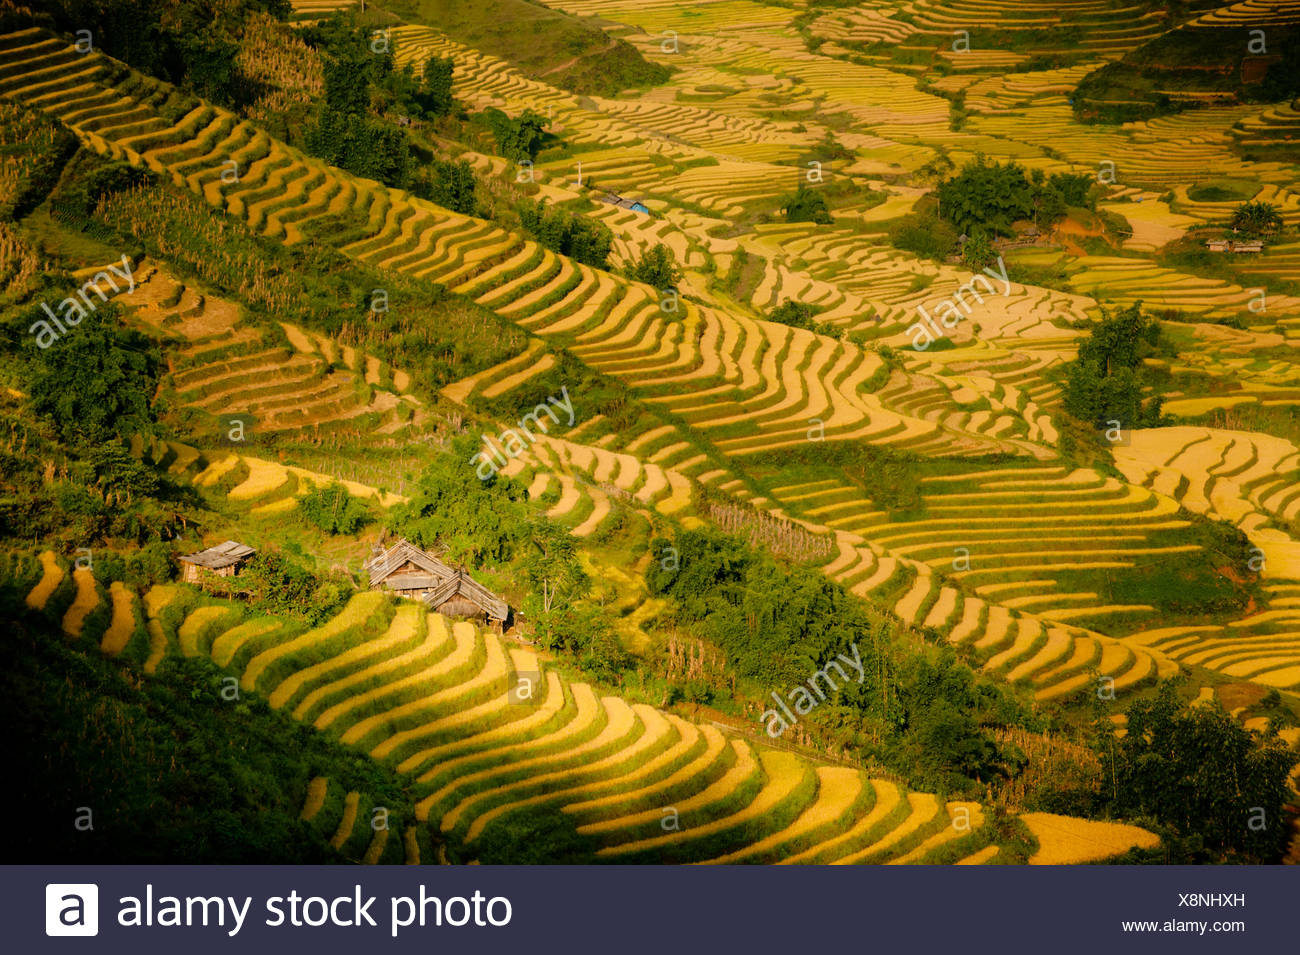 Rice paddies and mountains in mist and clouds.  Sapa, Vietnam, Asia. - Stock Image